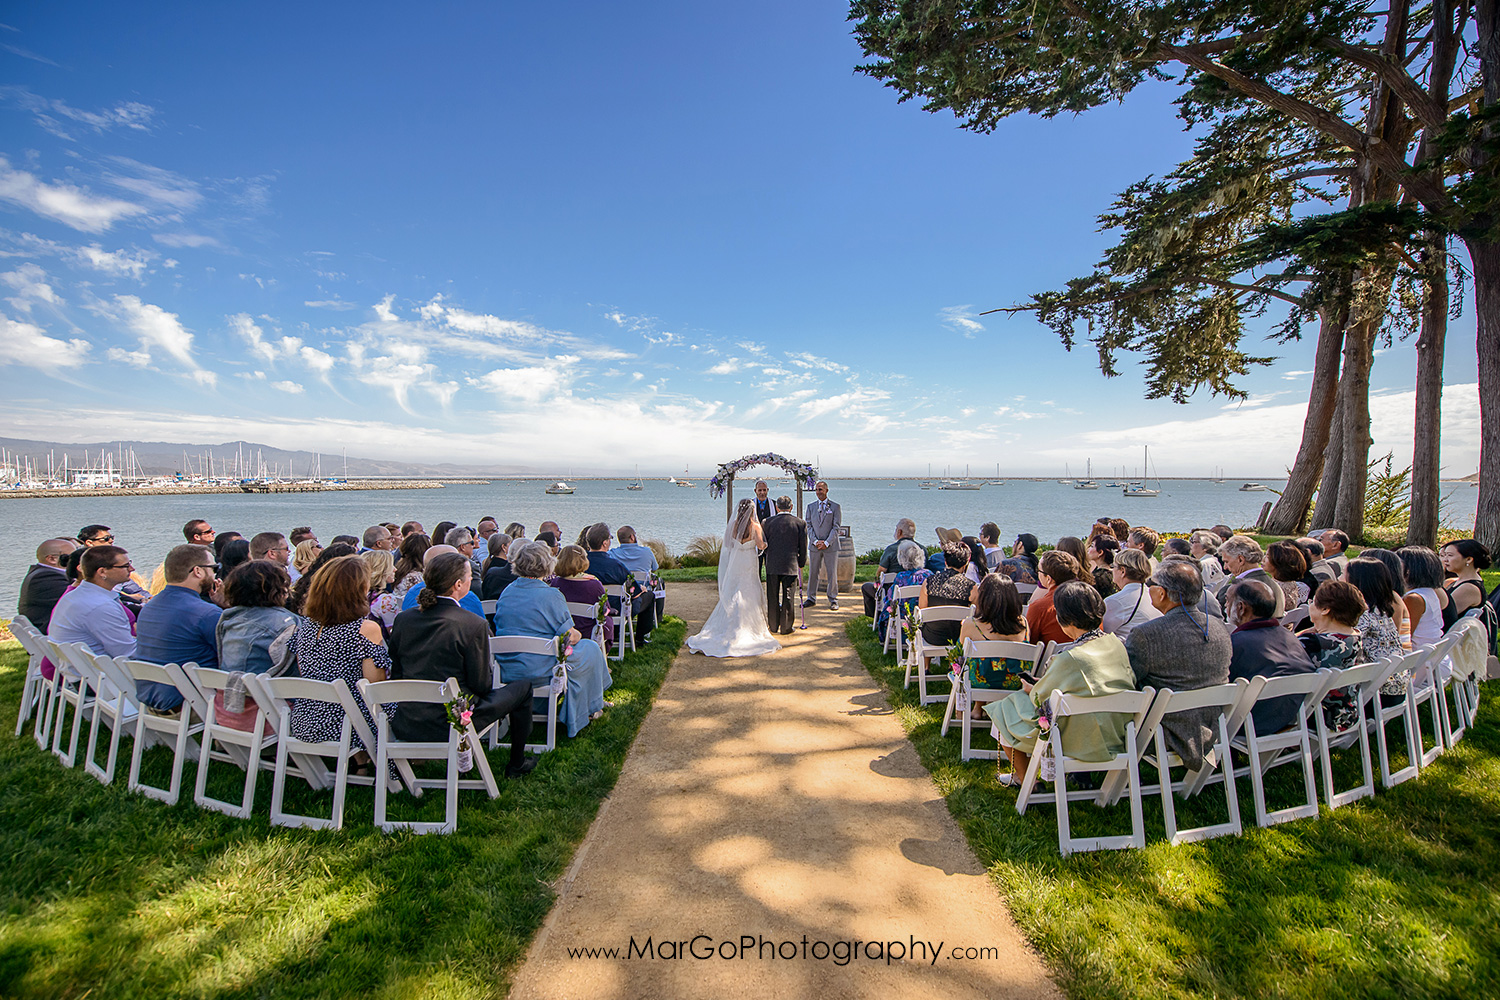 wedding ceremony at Mavericks Event Center in Half Moon Bay